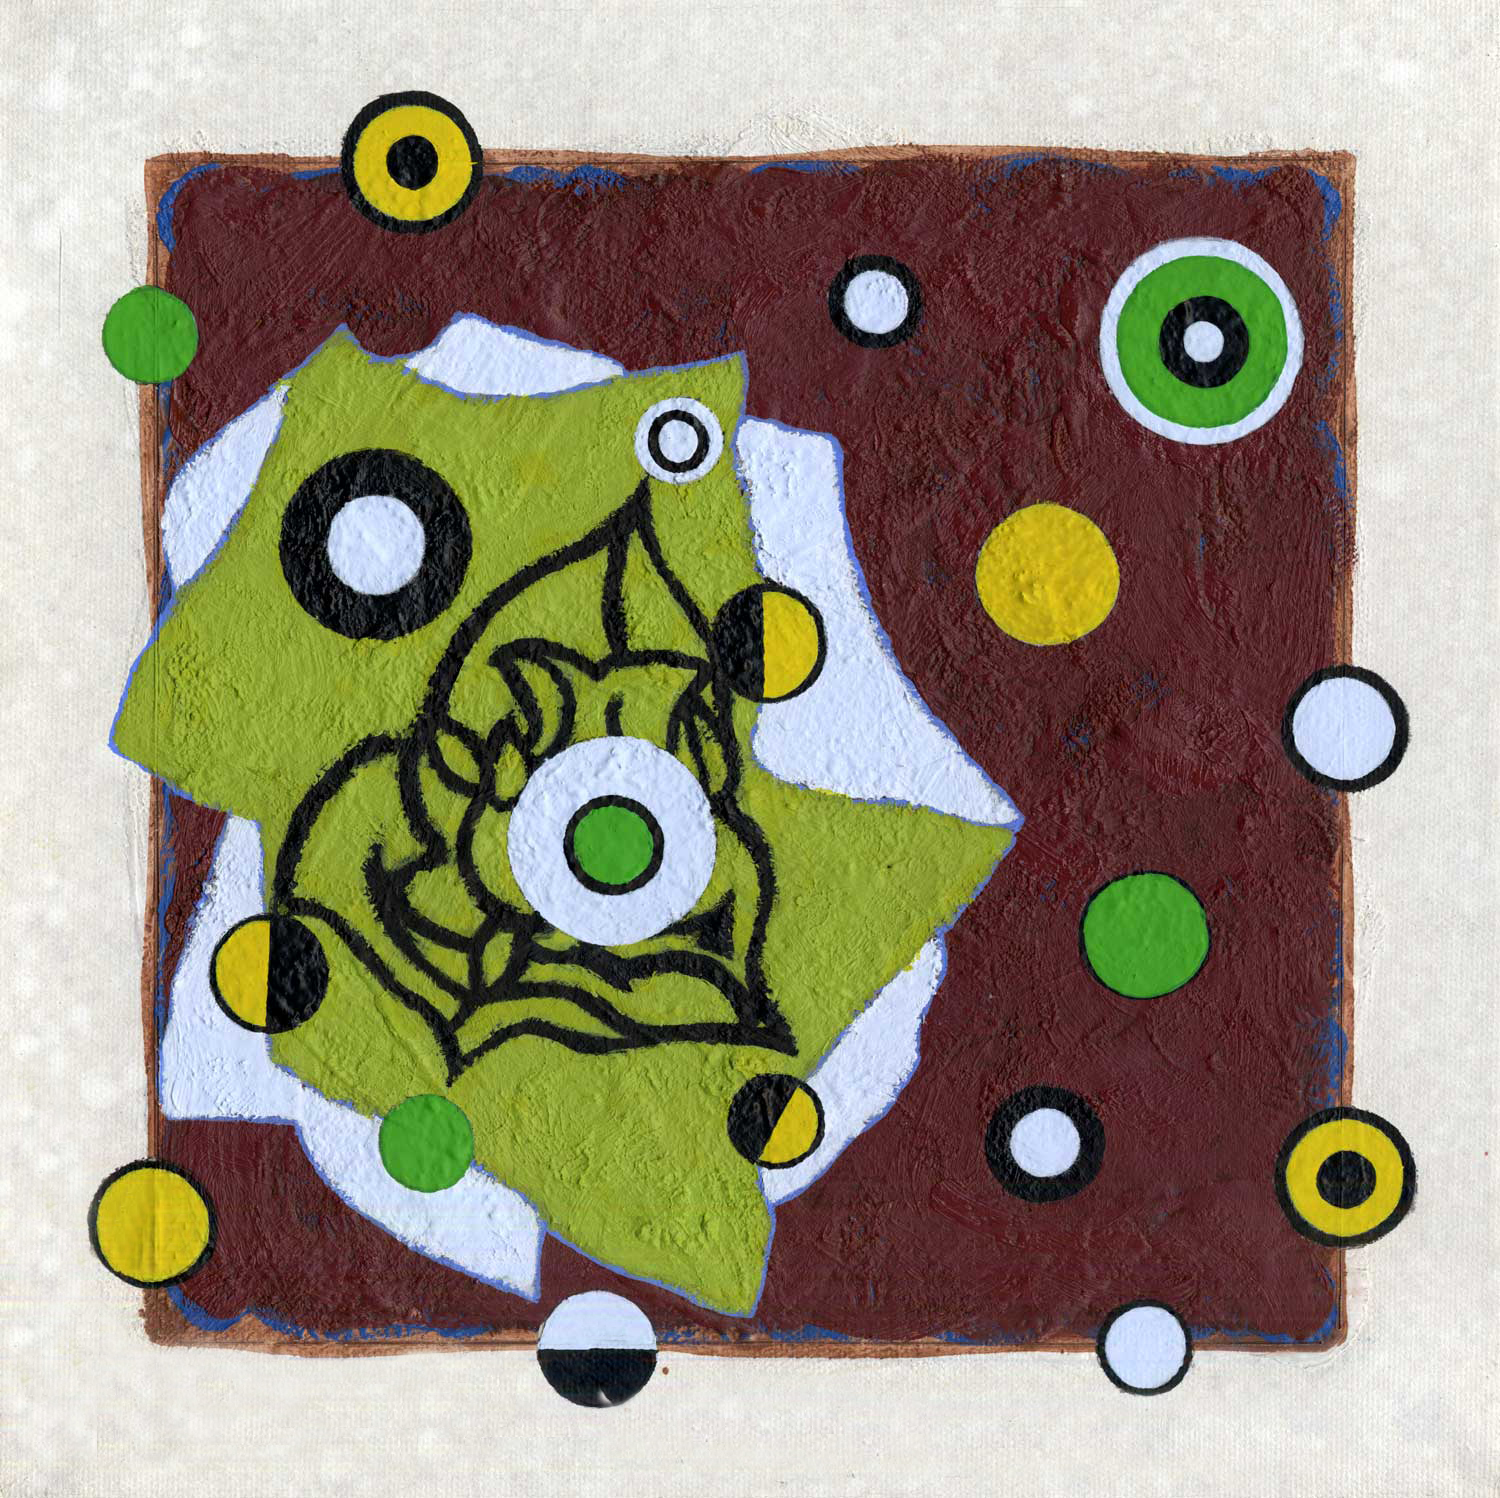 S233/Sq113  , 2014, oil and wax on canvas, 12 x 12 in.